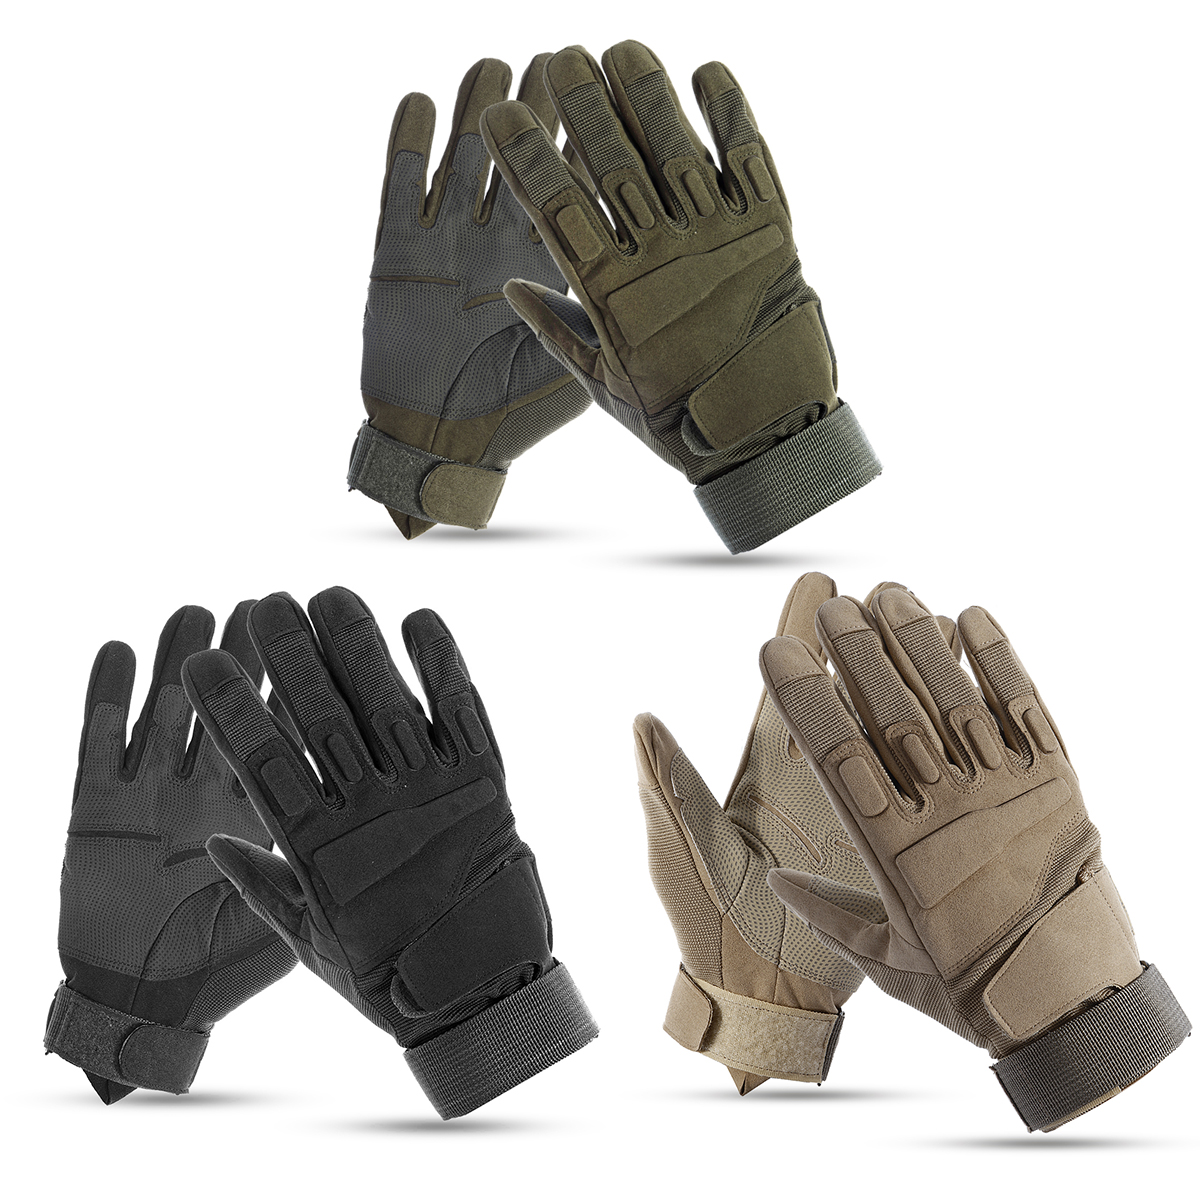 1 Pair Outdoor Tactical Gloves Men Army Military Sports Climbing Cycling Fitness Anti-skid Gloves